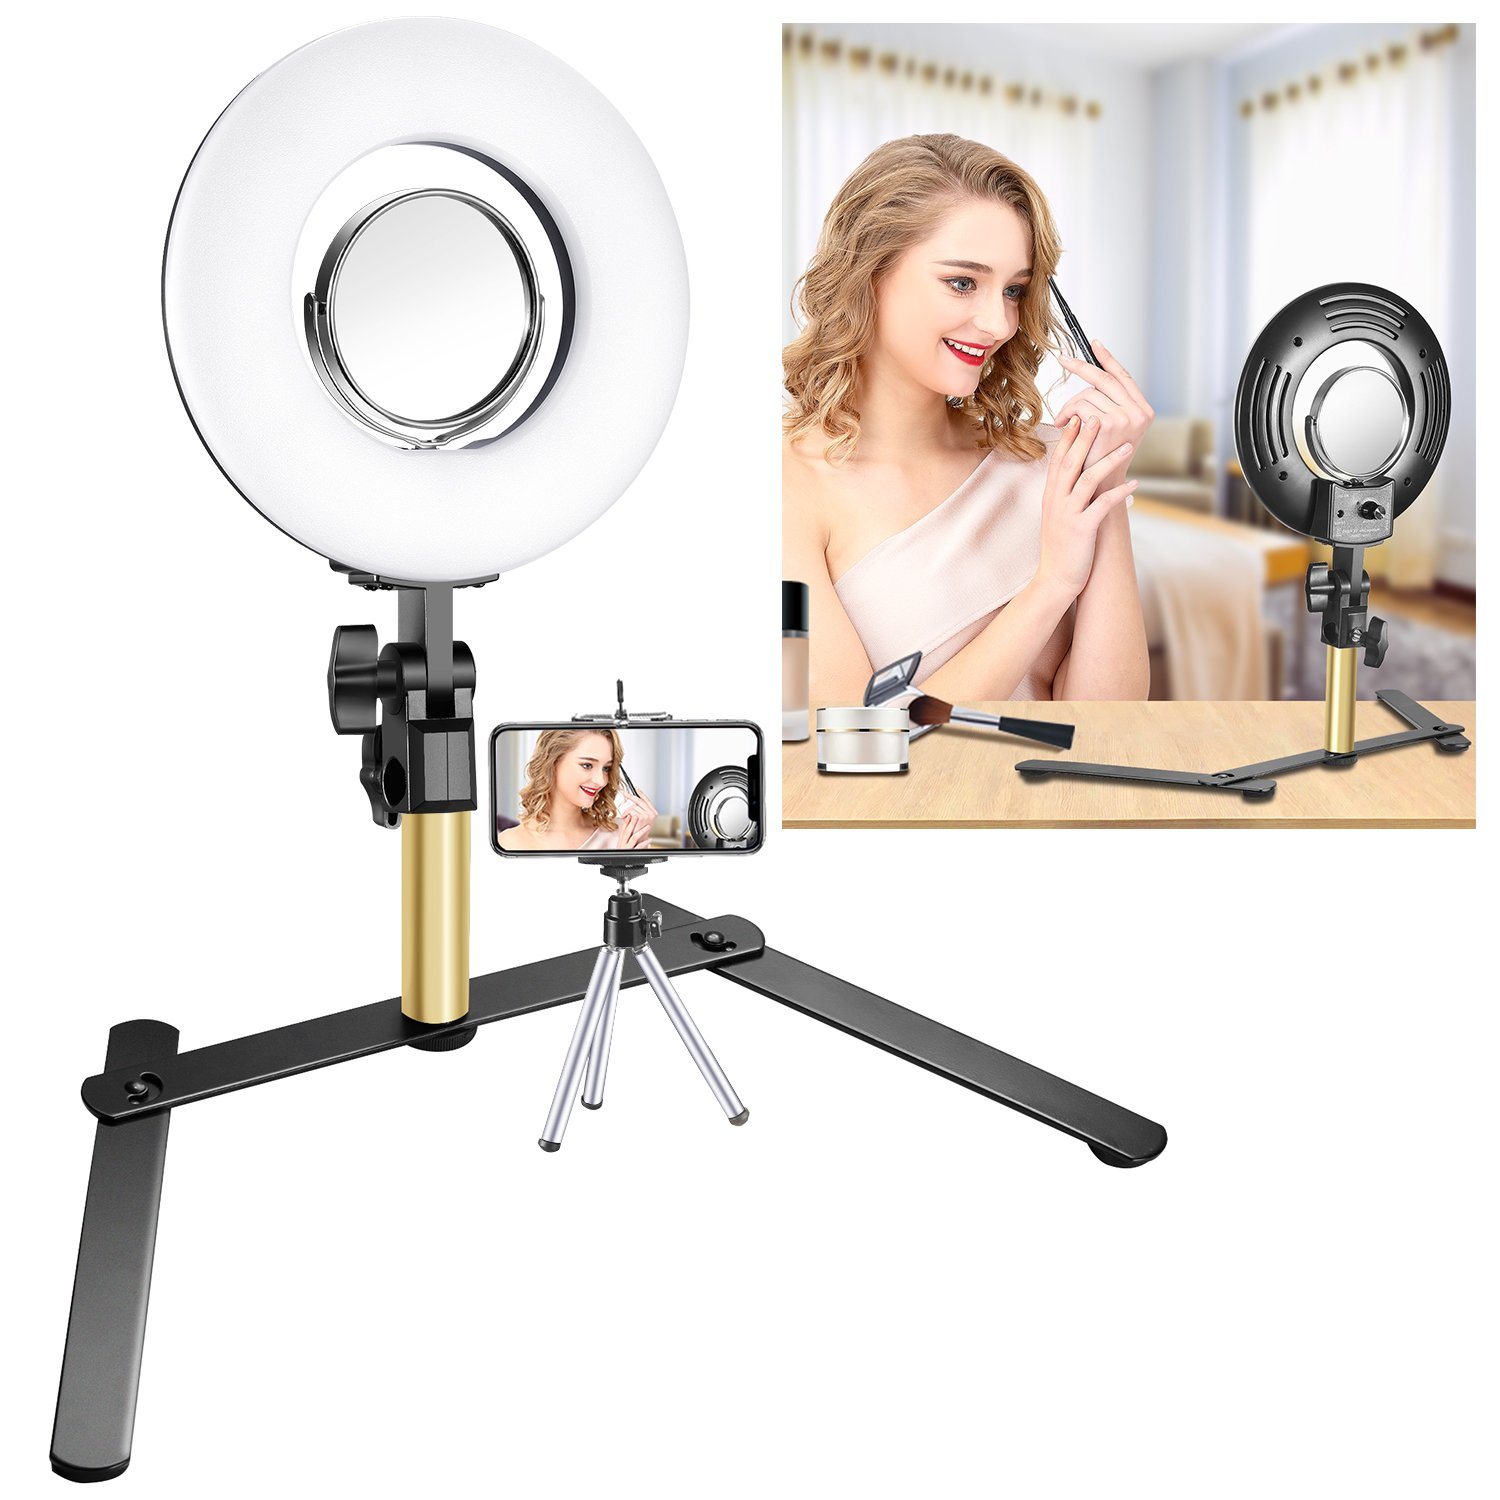 Neewer Tabletop Makeup Ring Light Kit: 8-inch Dimmable Mini